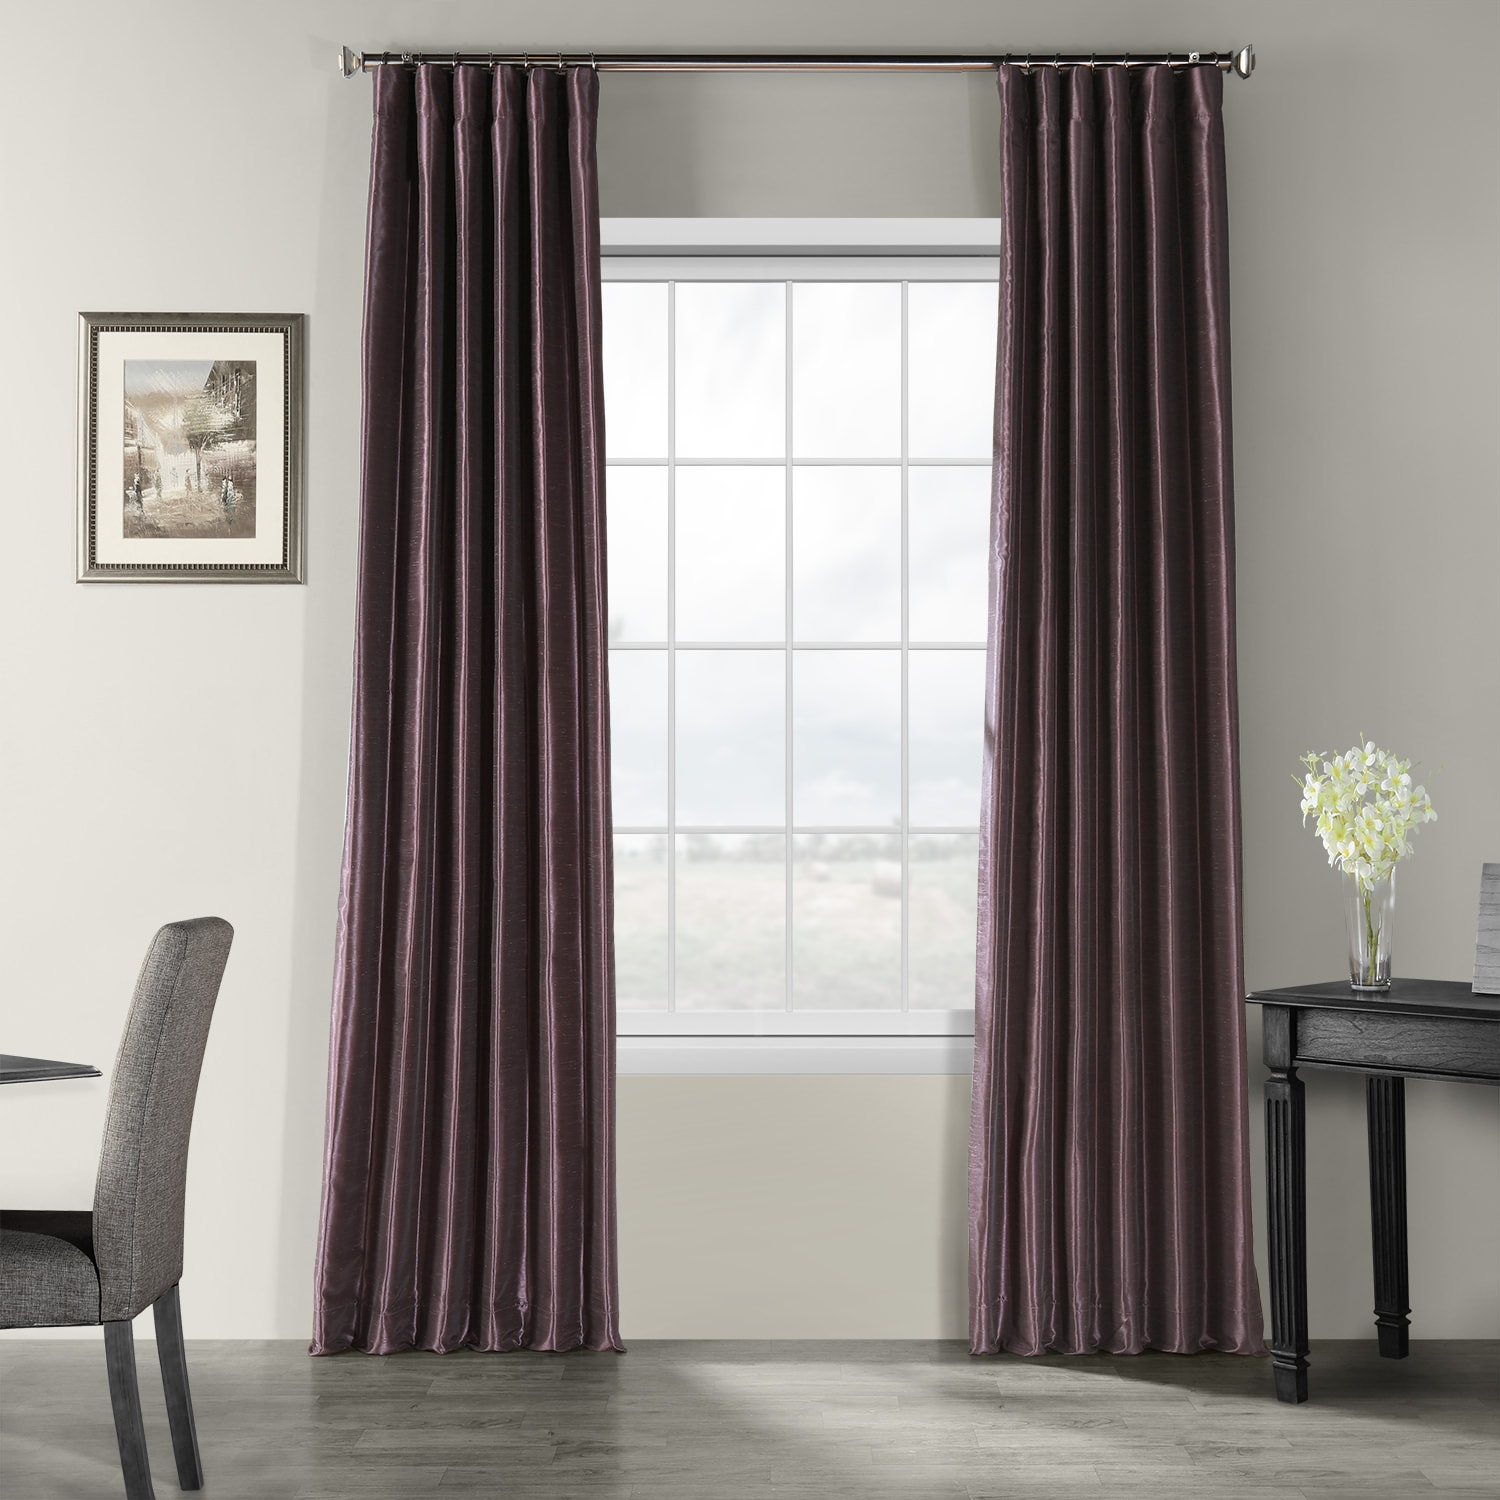 Dark Grape Vintage Textured Faux Dupioni Silk Curtain Pertaining To Ice White Vintage Faux Textured Silk Curtain Panels (View 3 of 20)